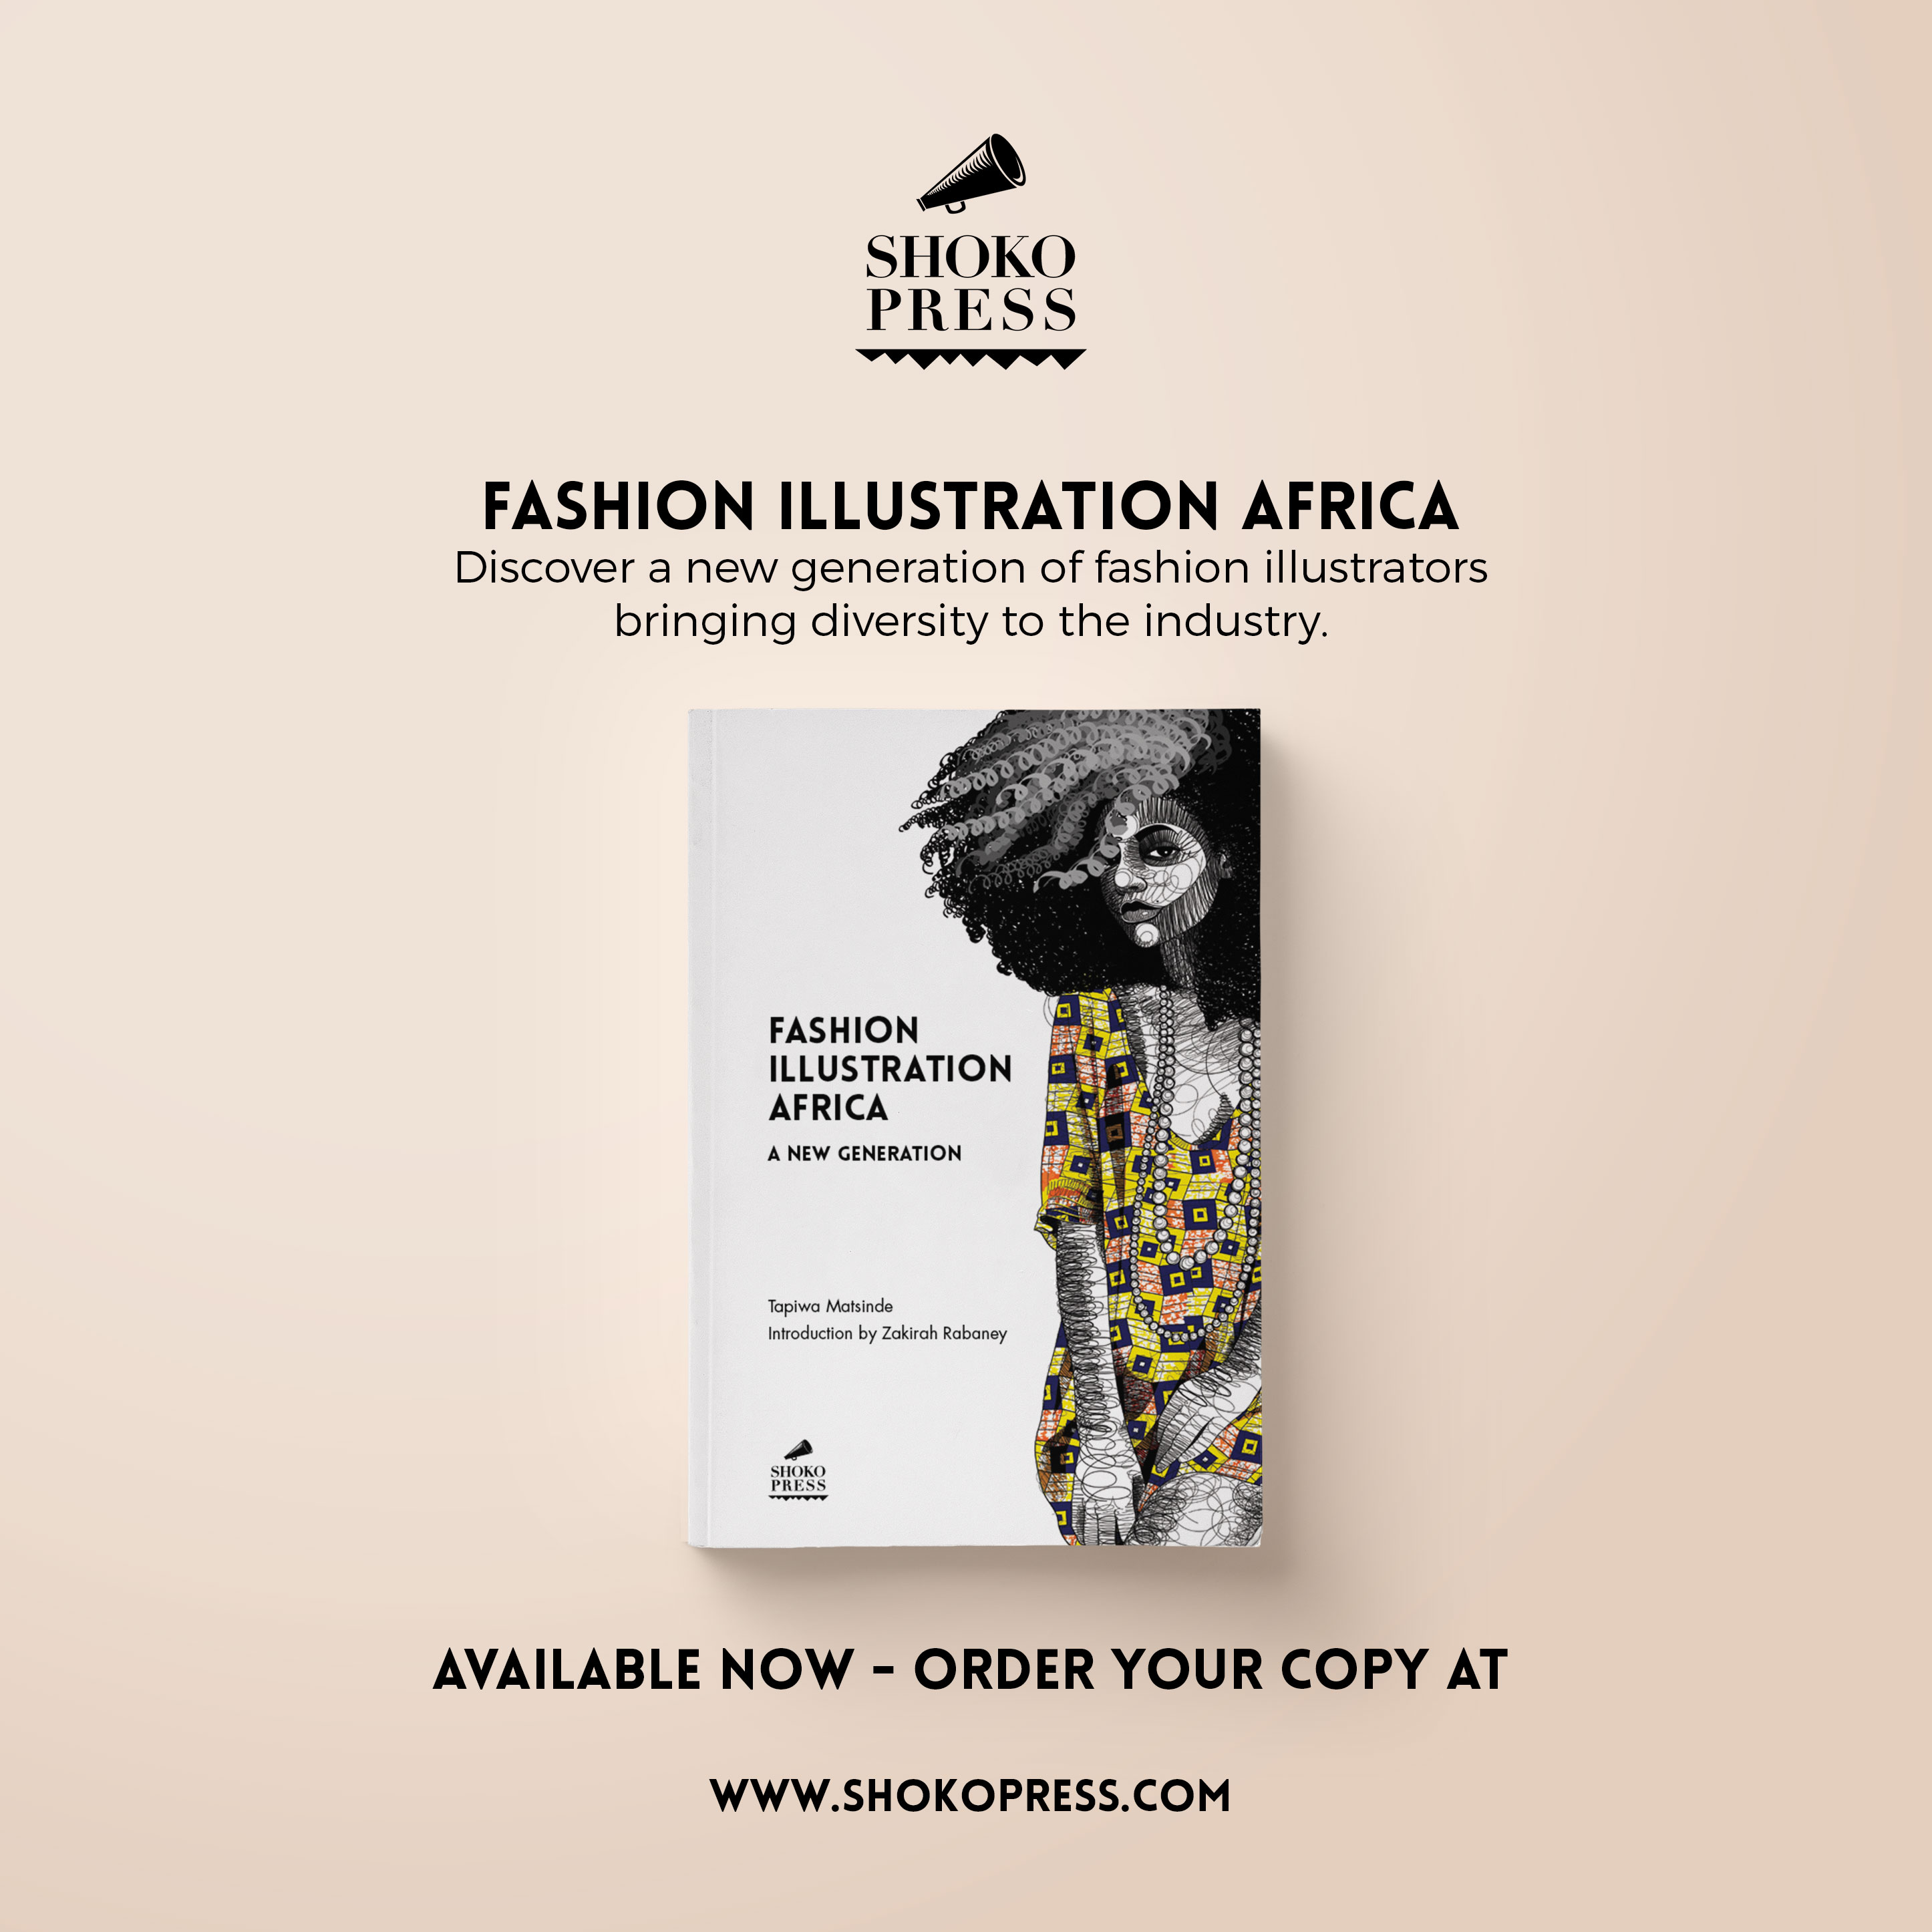 Fashion Illustration Africa published by Shoko Press